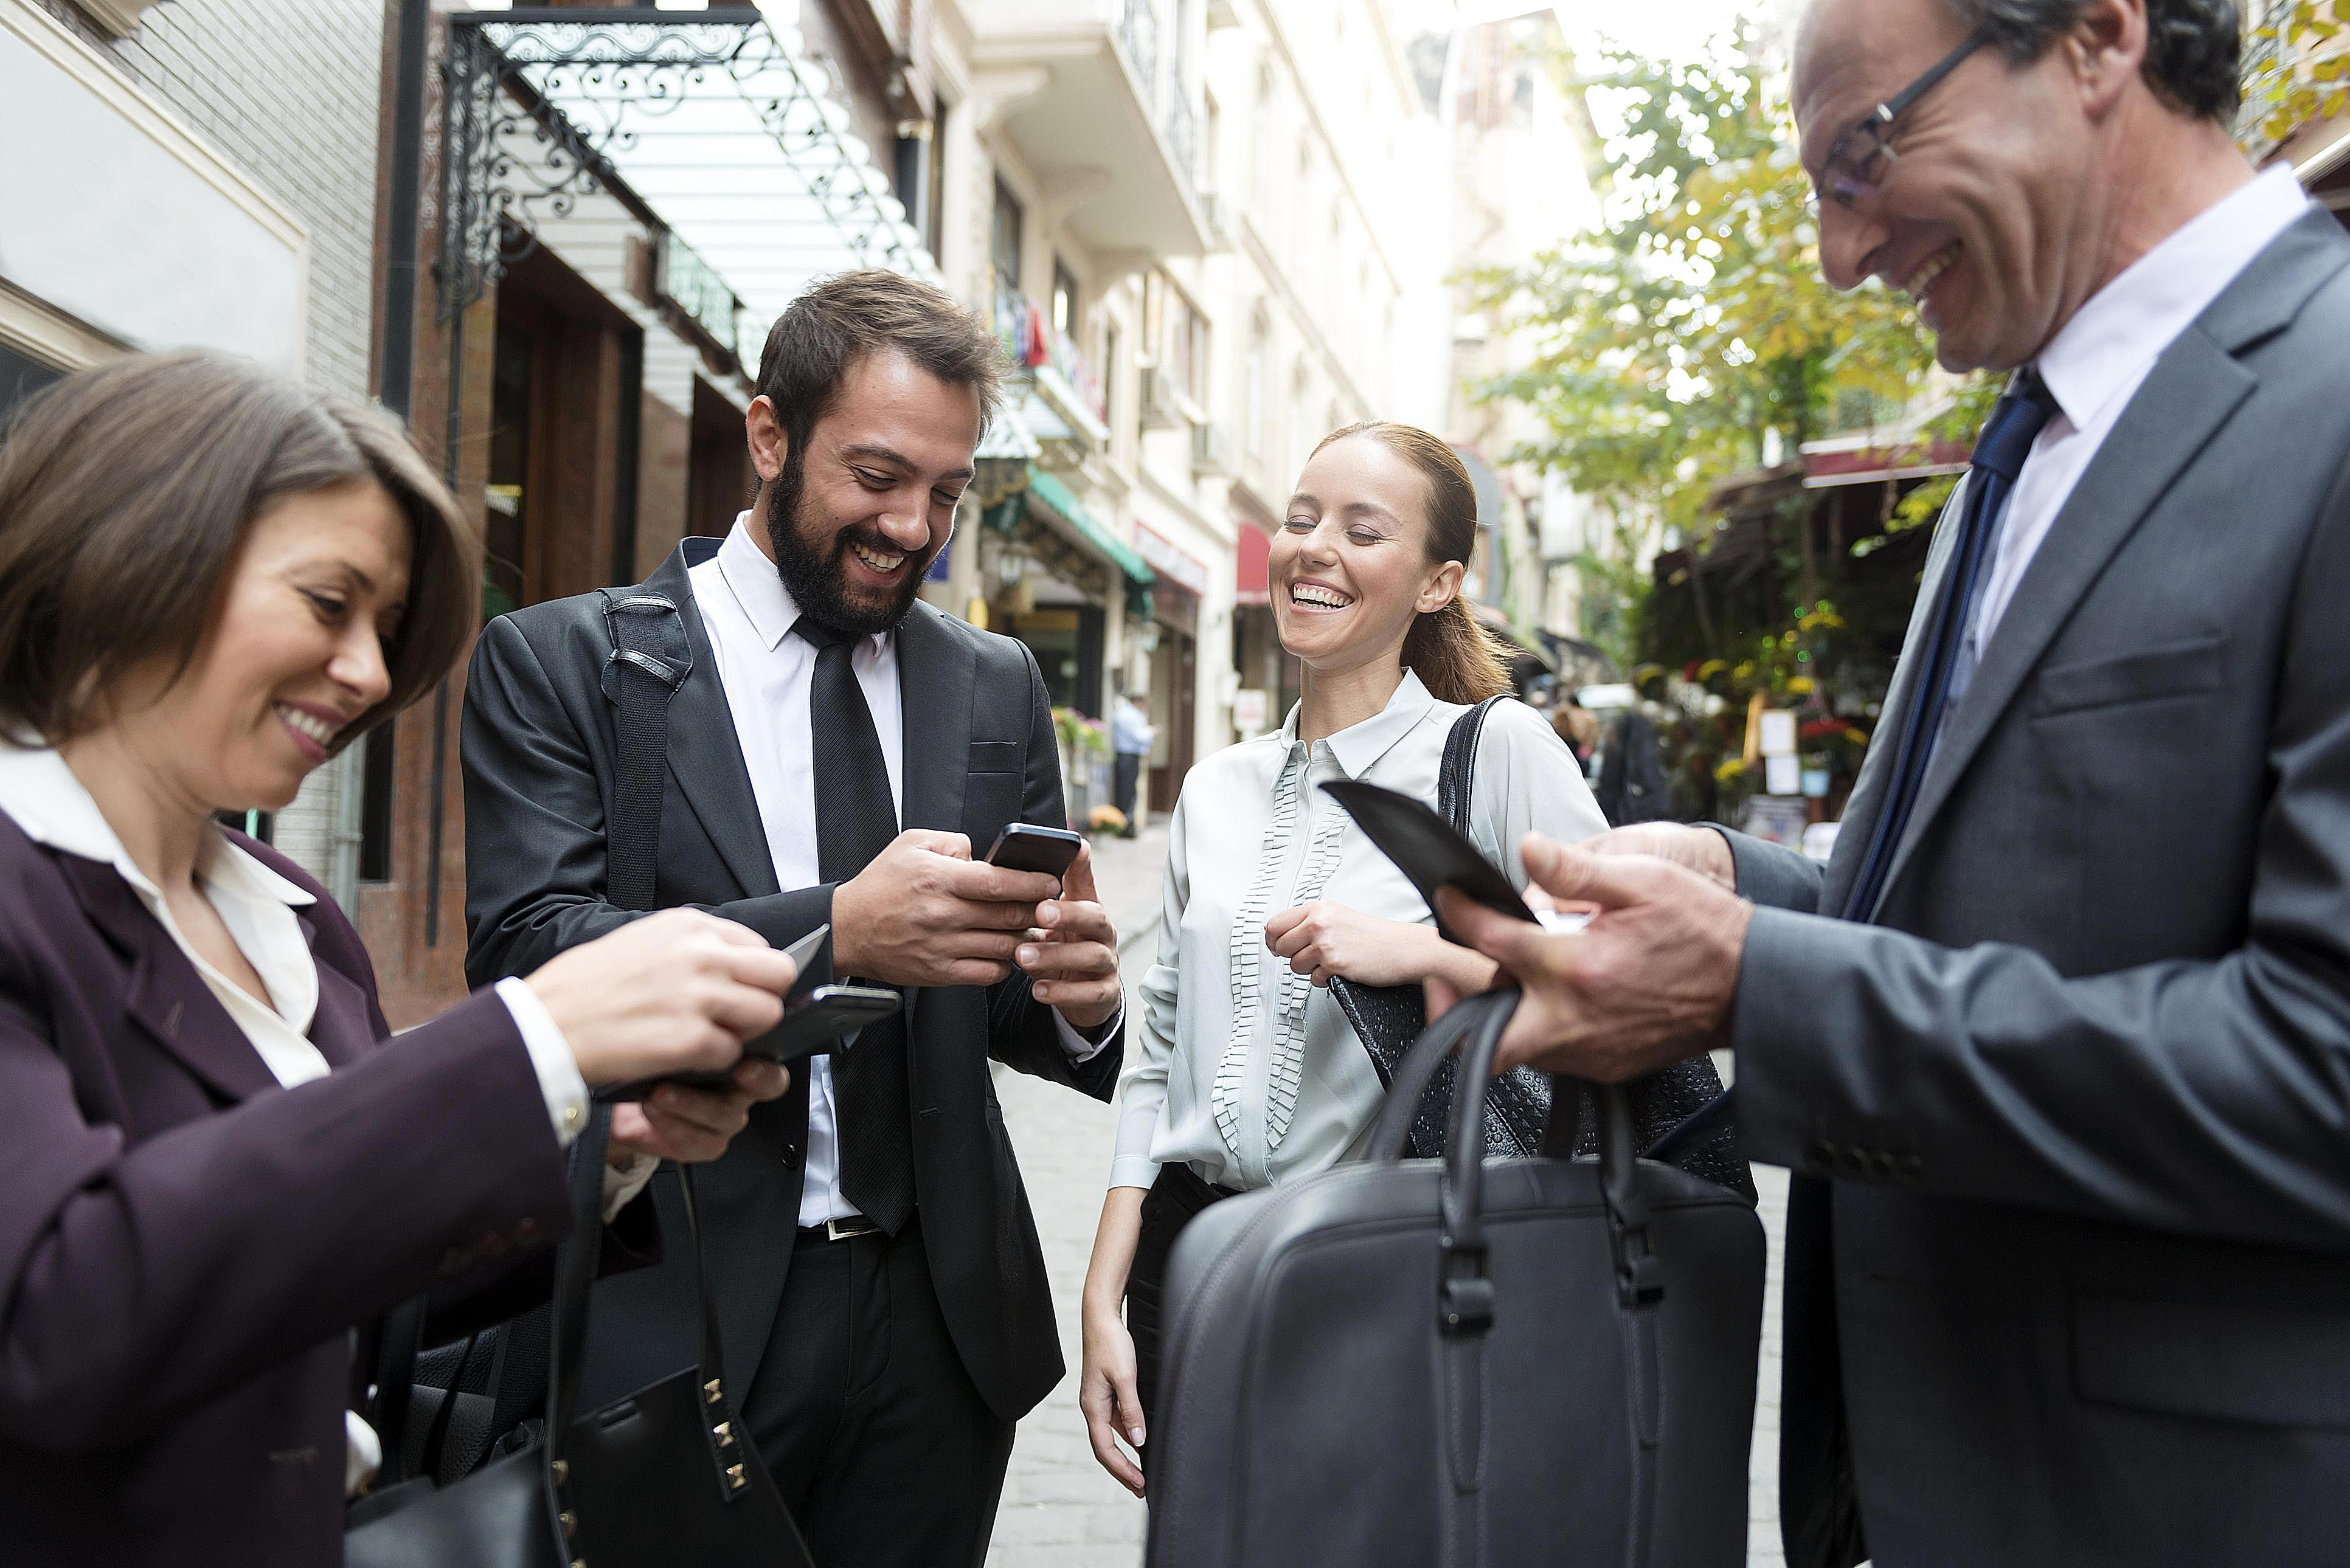 Businesspeople exchanging information